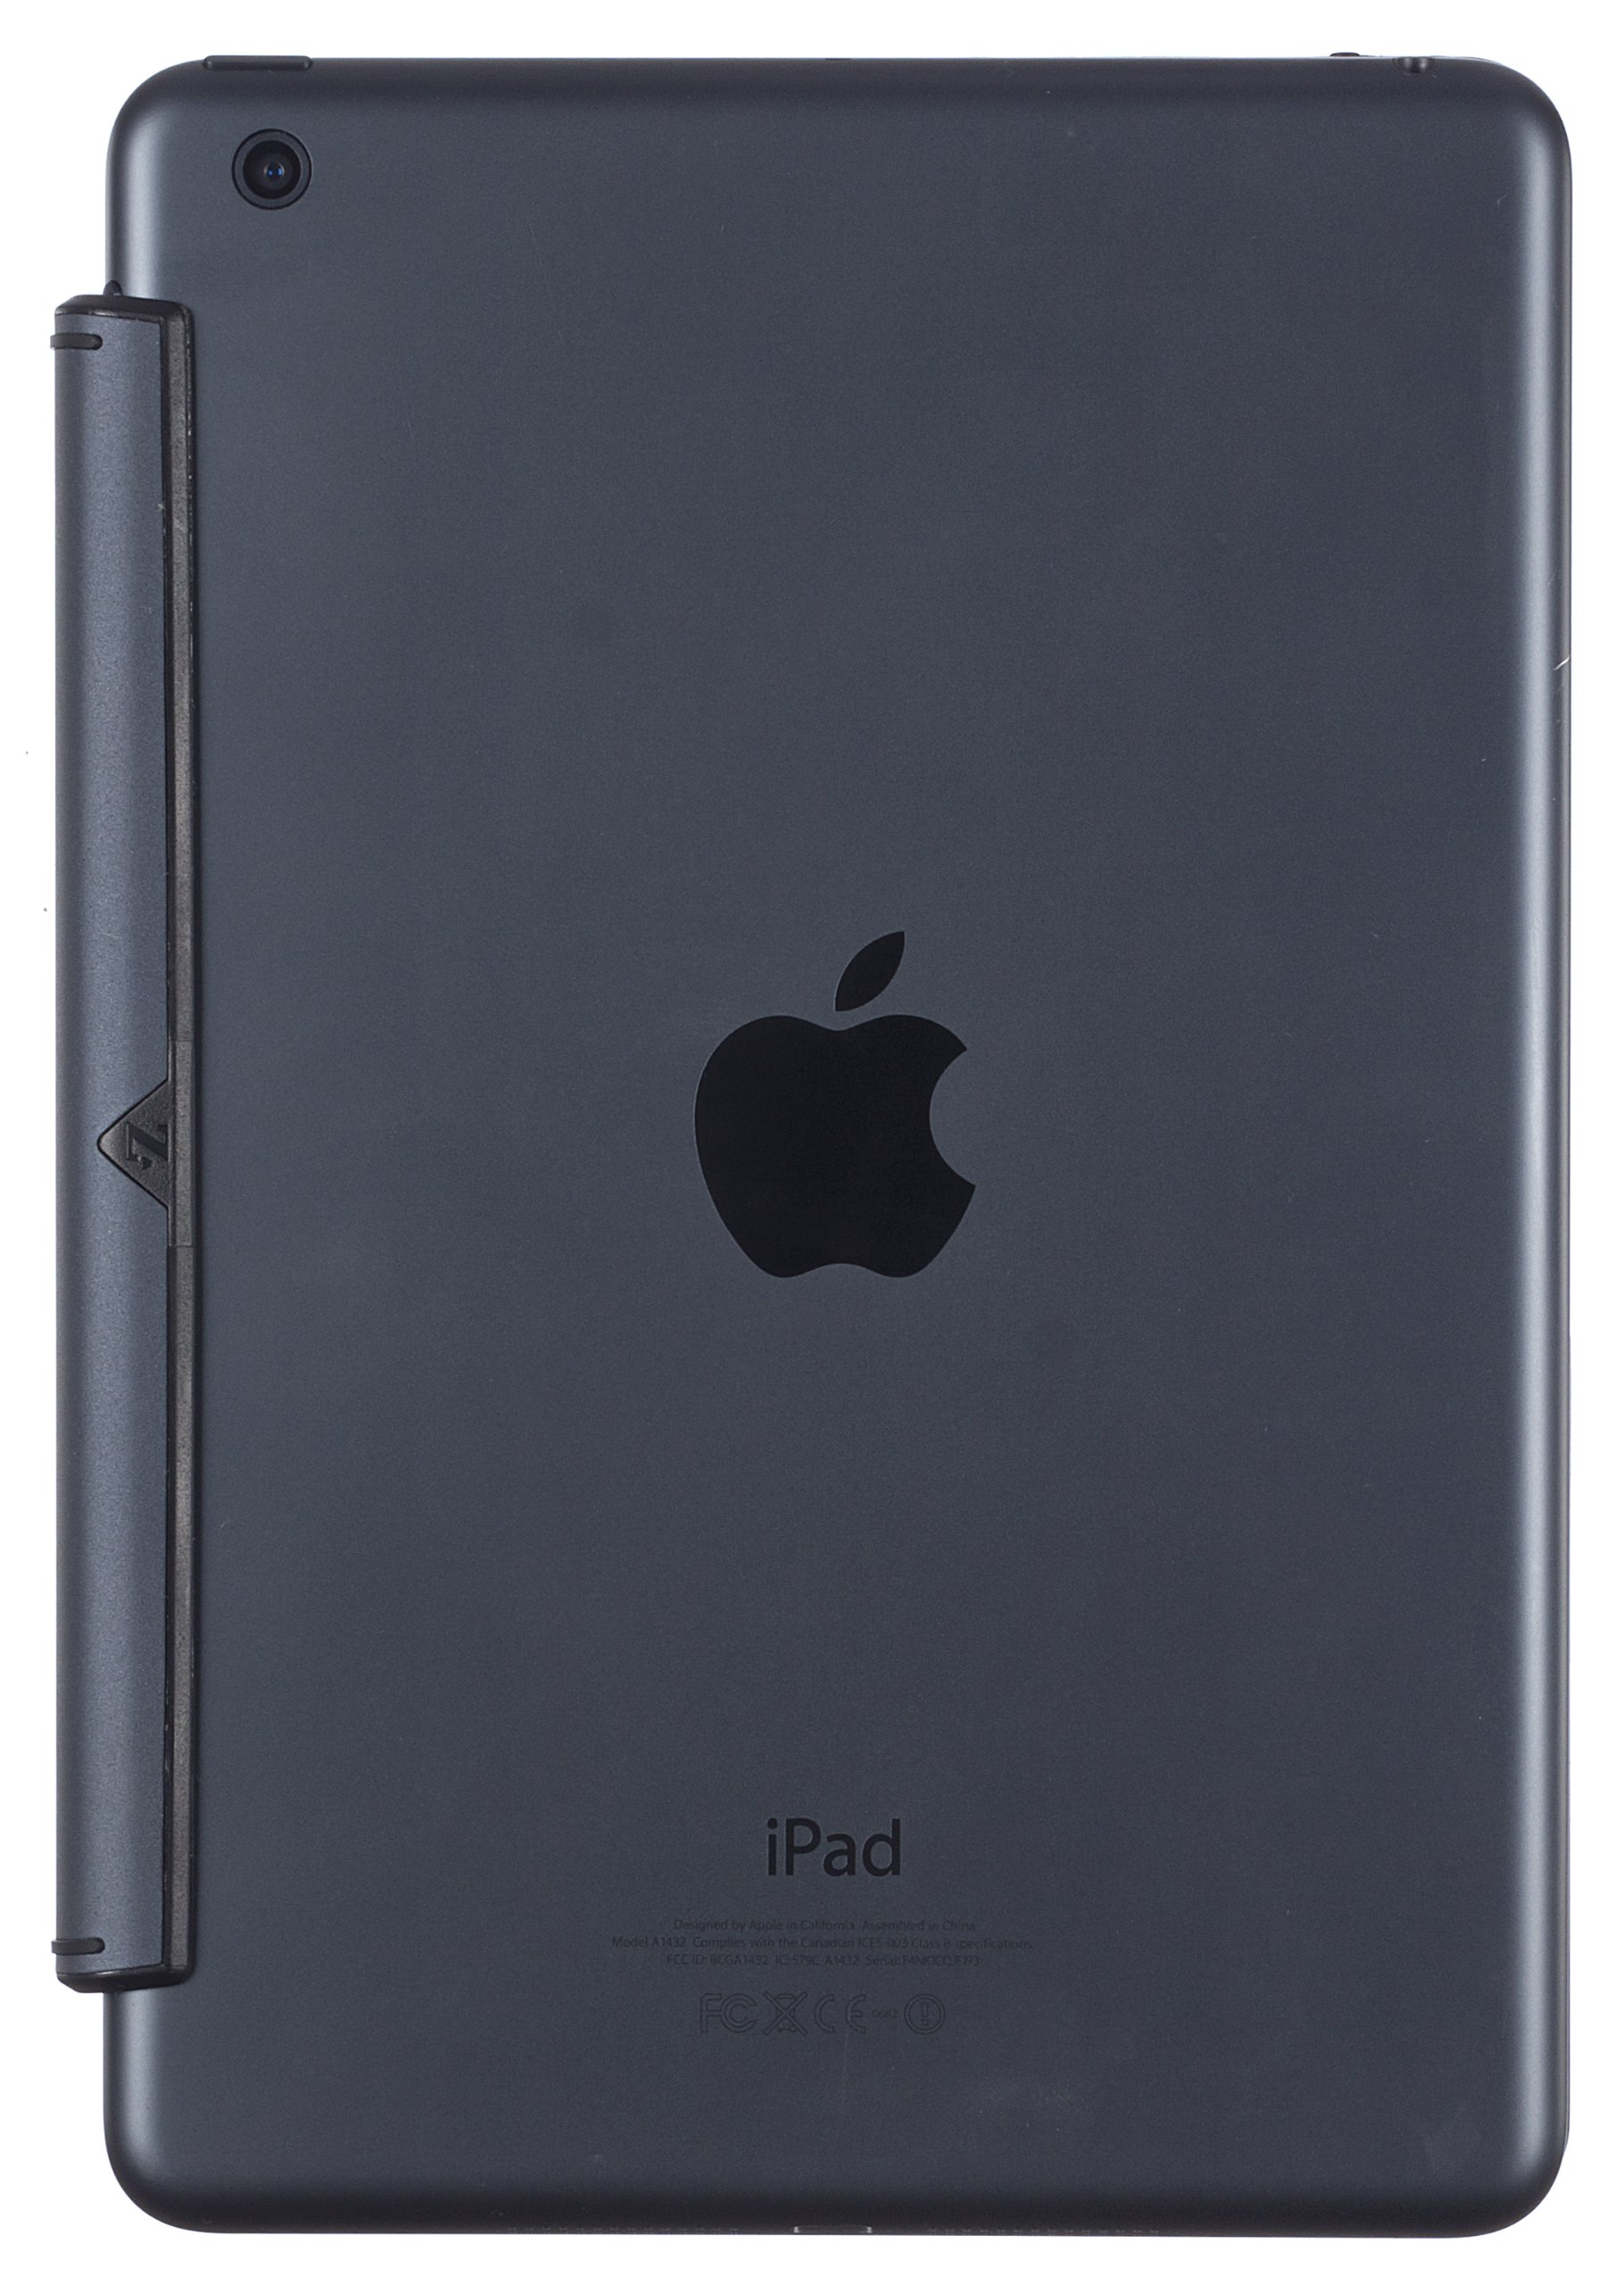 ZAGG Cover with Backlit Bluetooth Keyboard for Apple iPad mini 1 /  mini 2 - Black by ZAGG (Image #5)